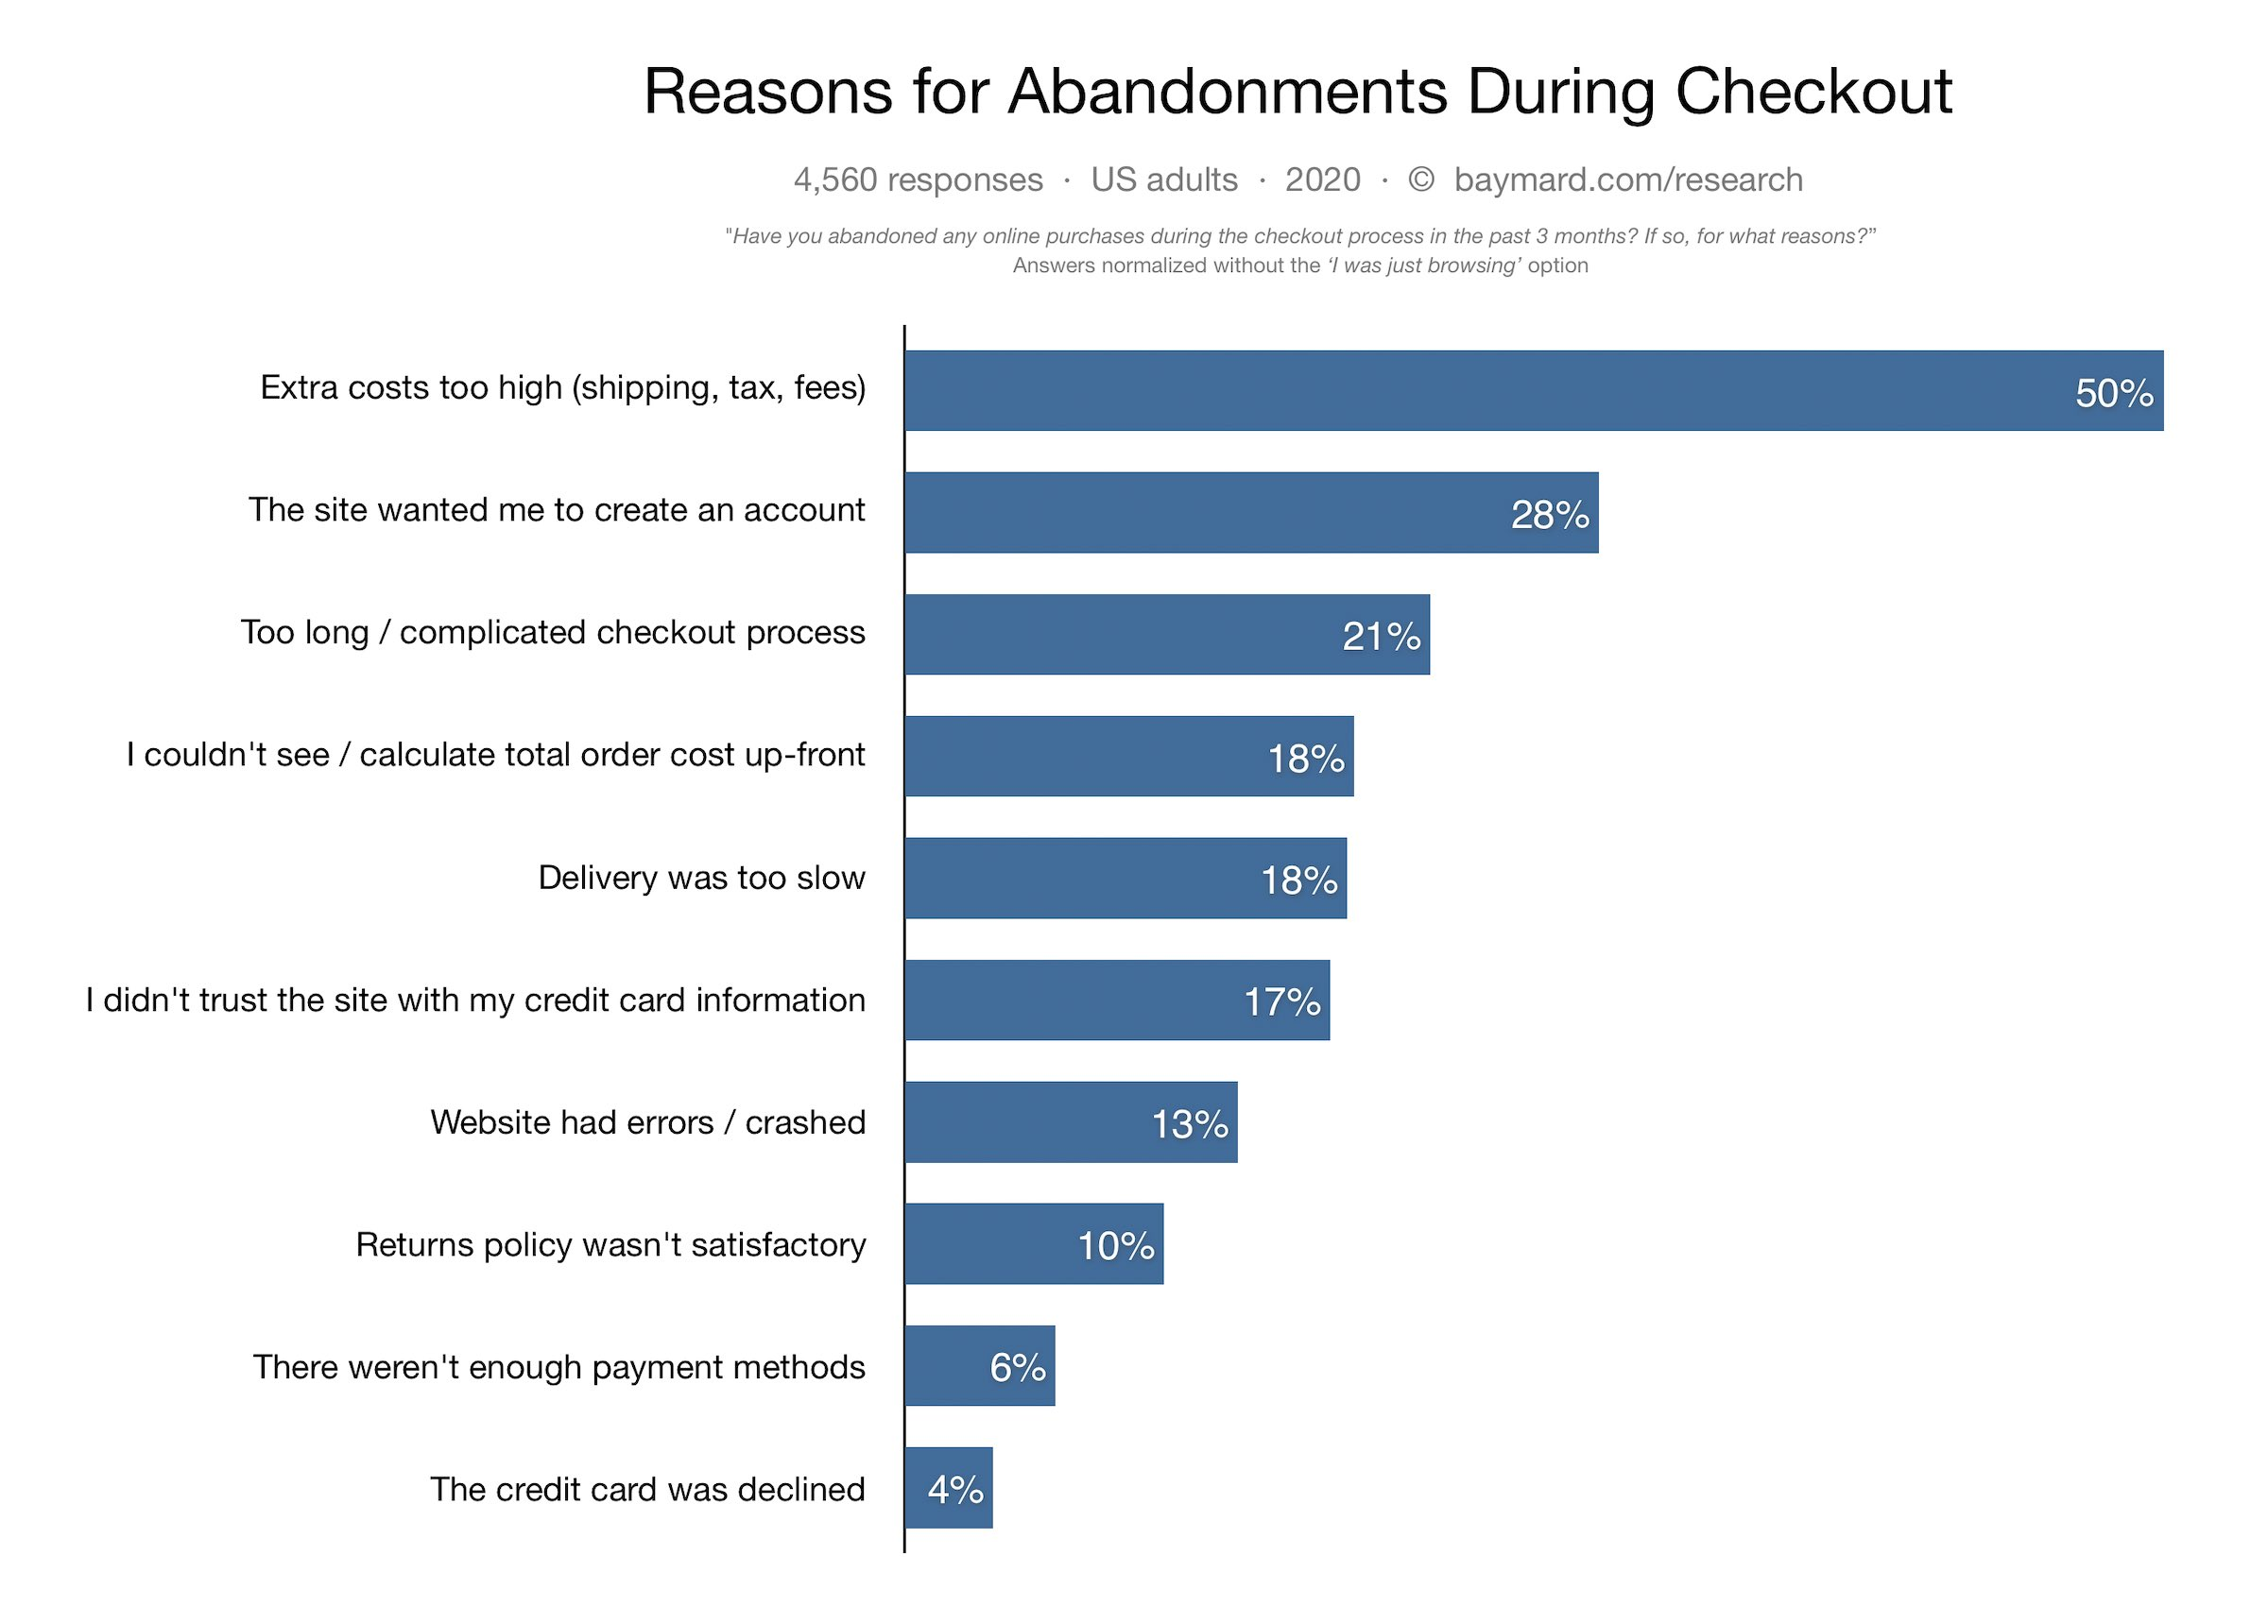 Reasons for abandonments during checkout by Baymard Institute